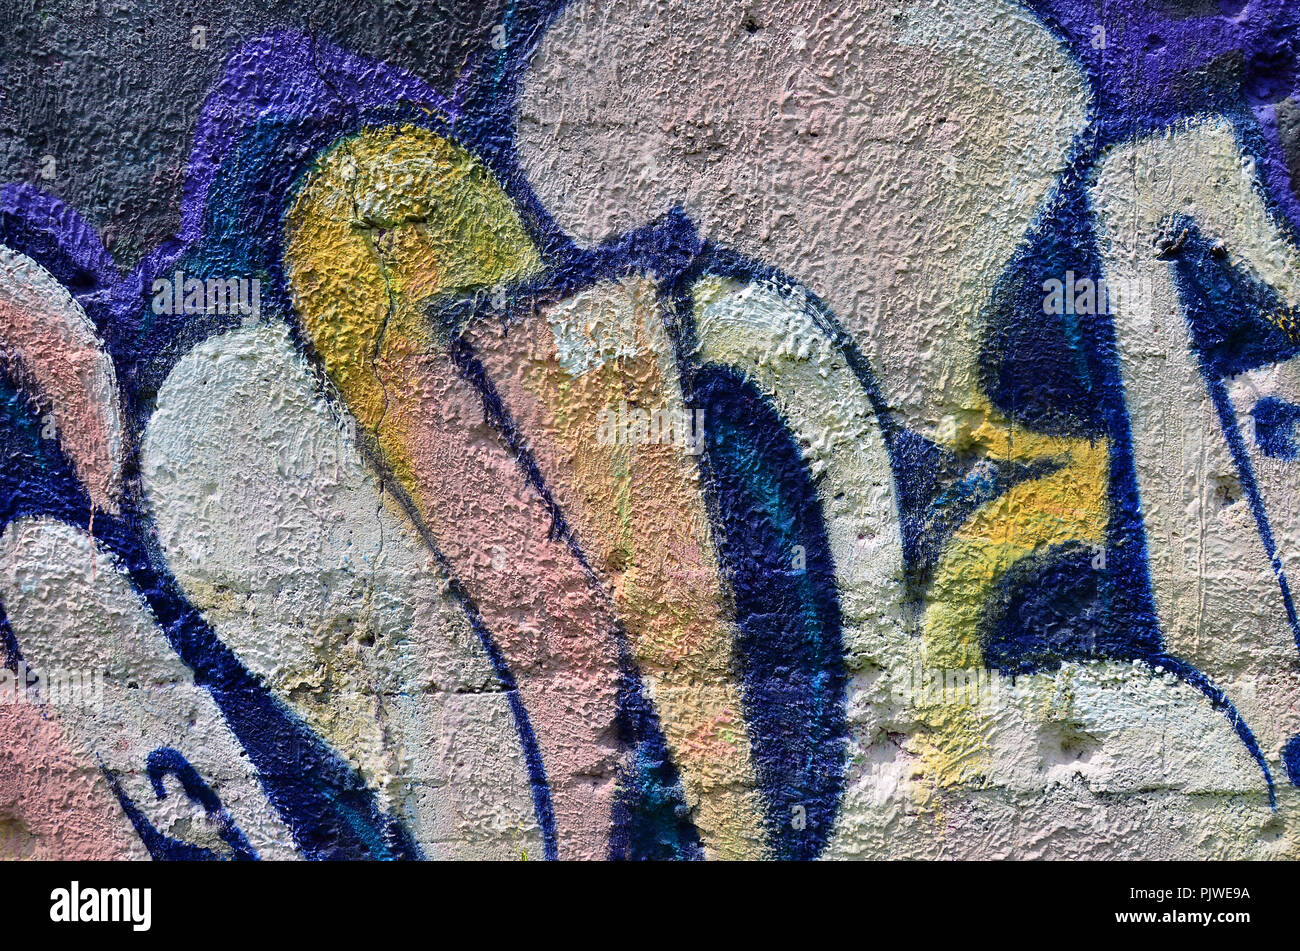 Beautiful street art graffiti abstract color creative drawing fashion colors on the walls of the city urban contemporary culture title paint on wal